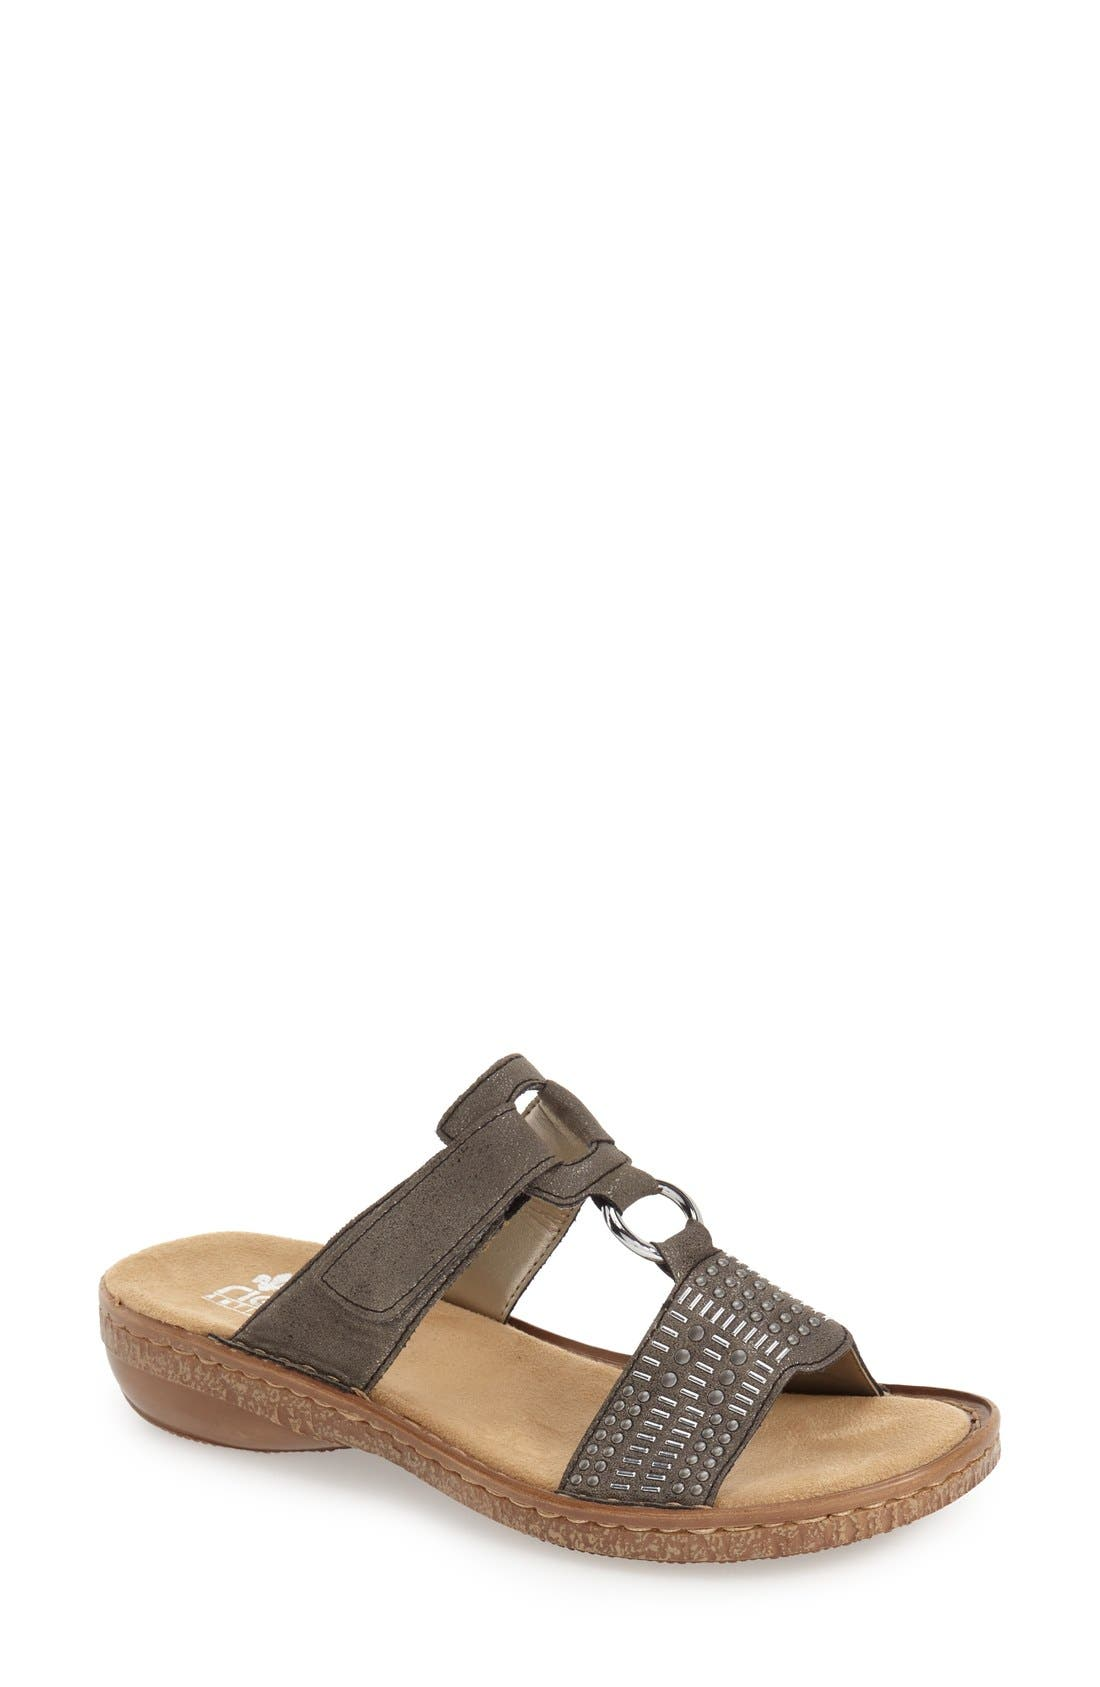 Alternate Image 1 Selected - Rieker Antistress 'Regina' Slide Sandal (Women)